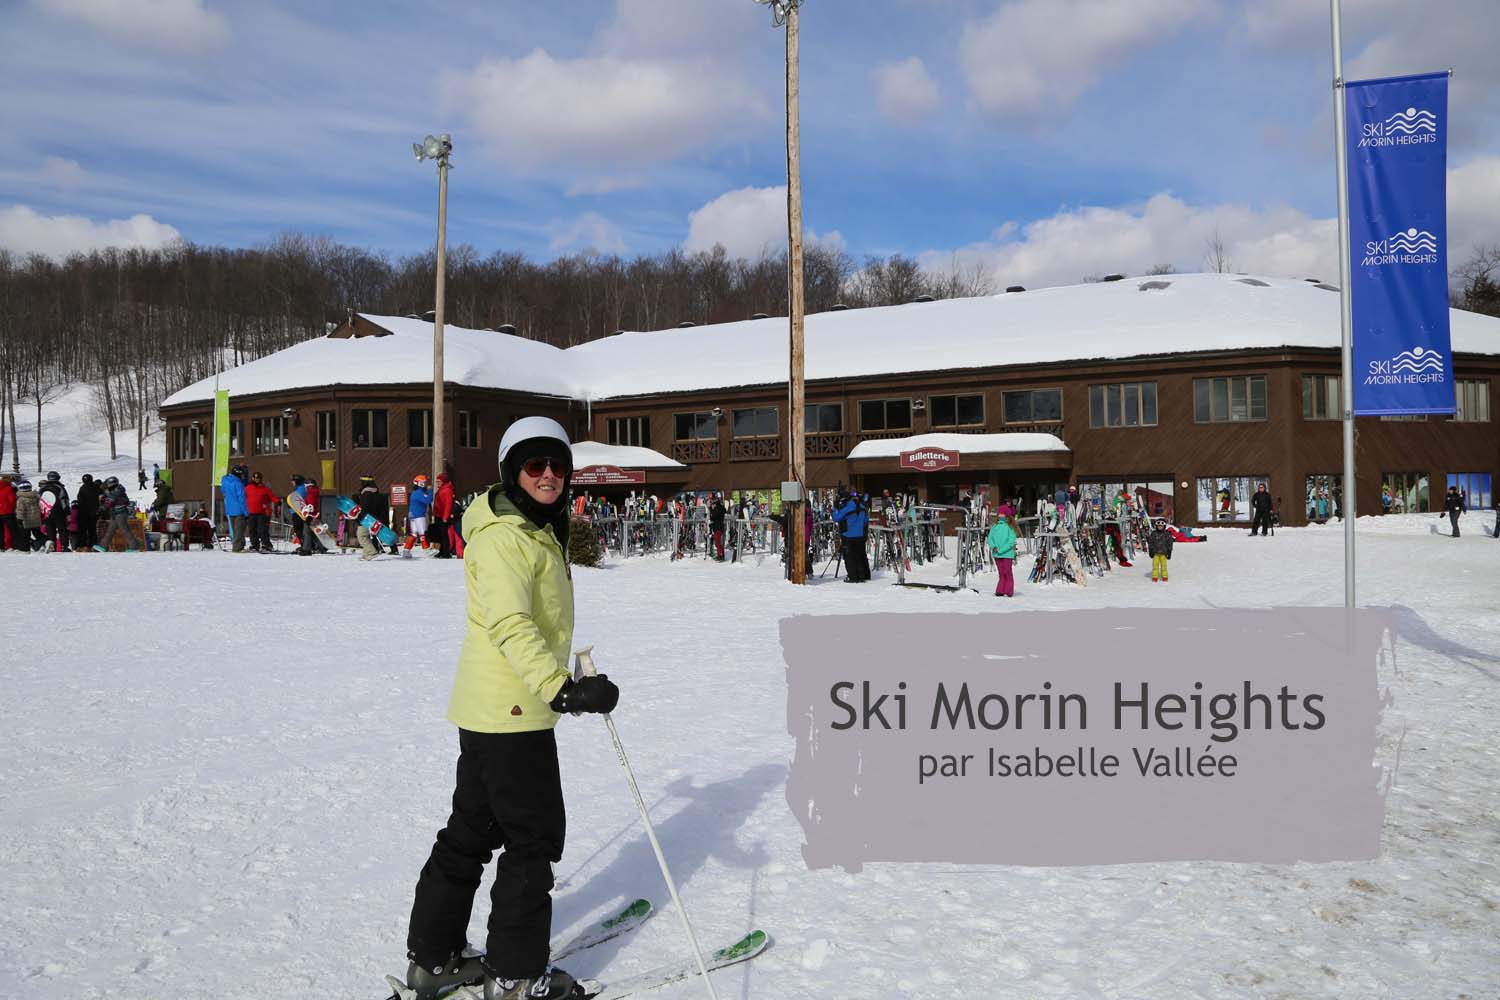 Morin_Heights_par_Isabelle_Vallee_Entete3